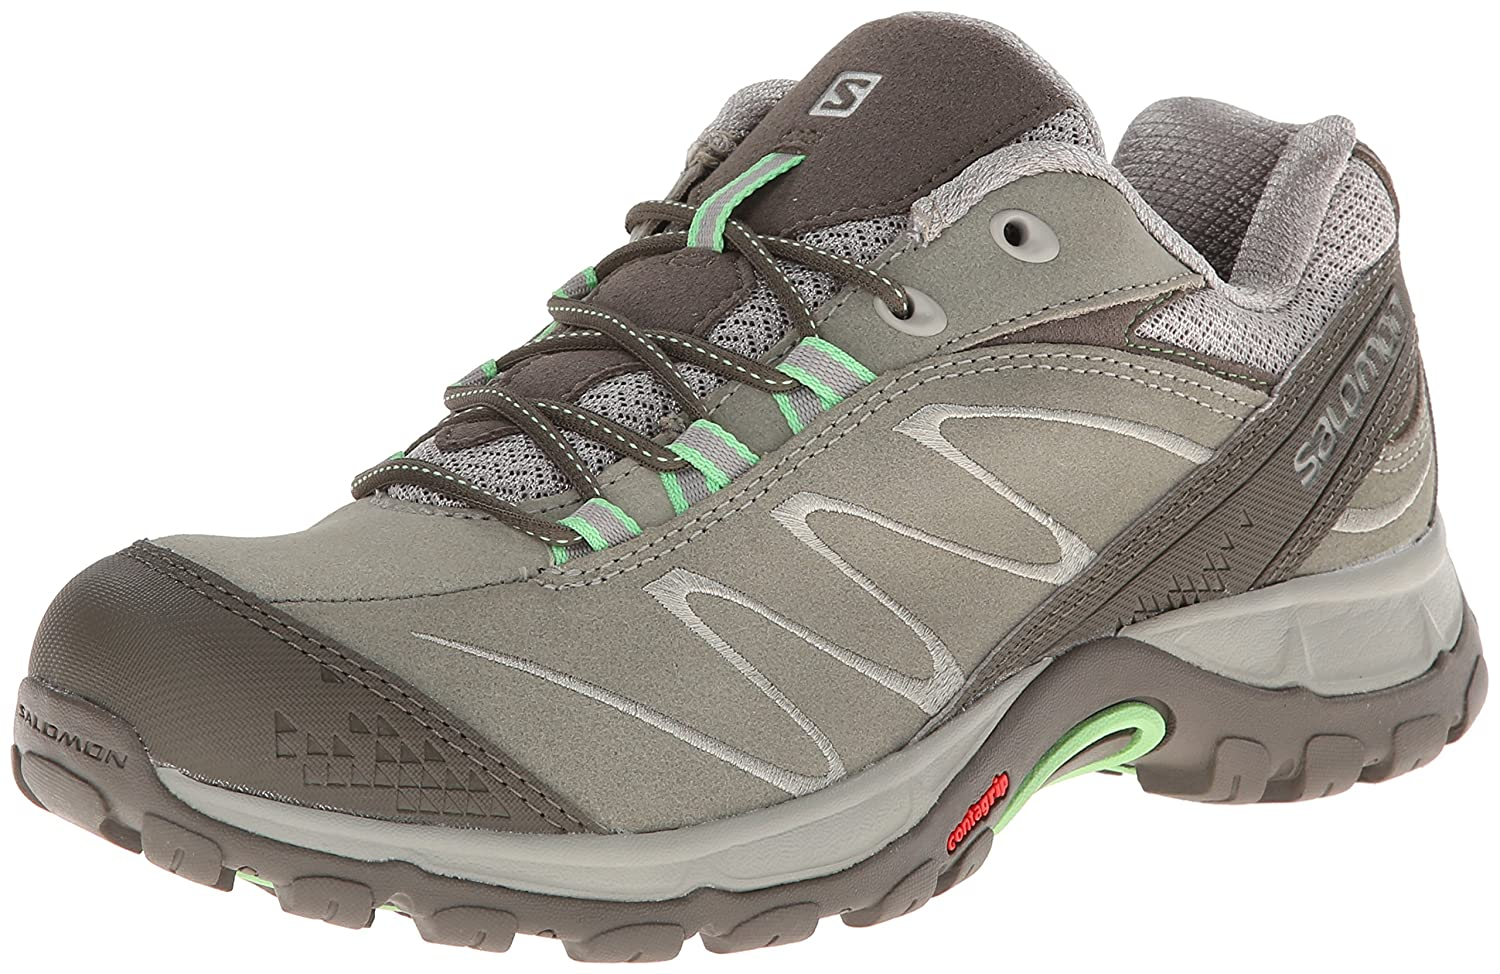 Salomon Ellipse LTR Womens Trail Zapatilla De Trekking - 36: Amazon.es: Zapatos y complementos